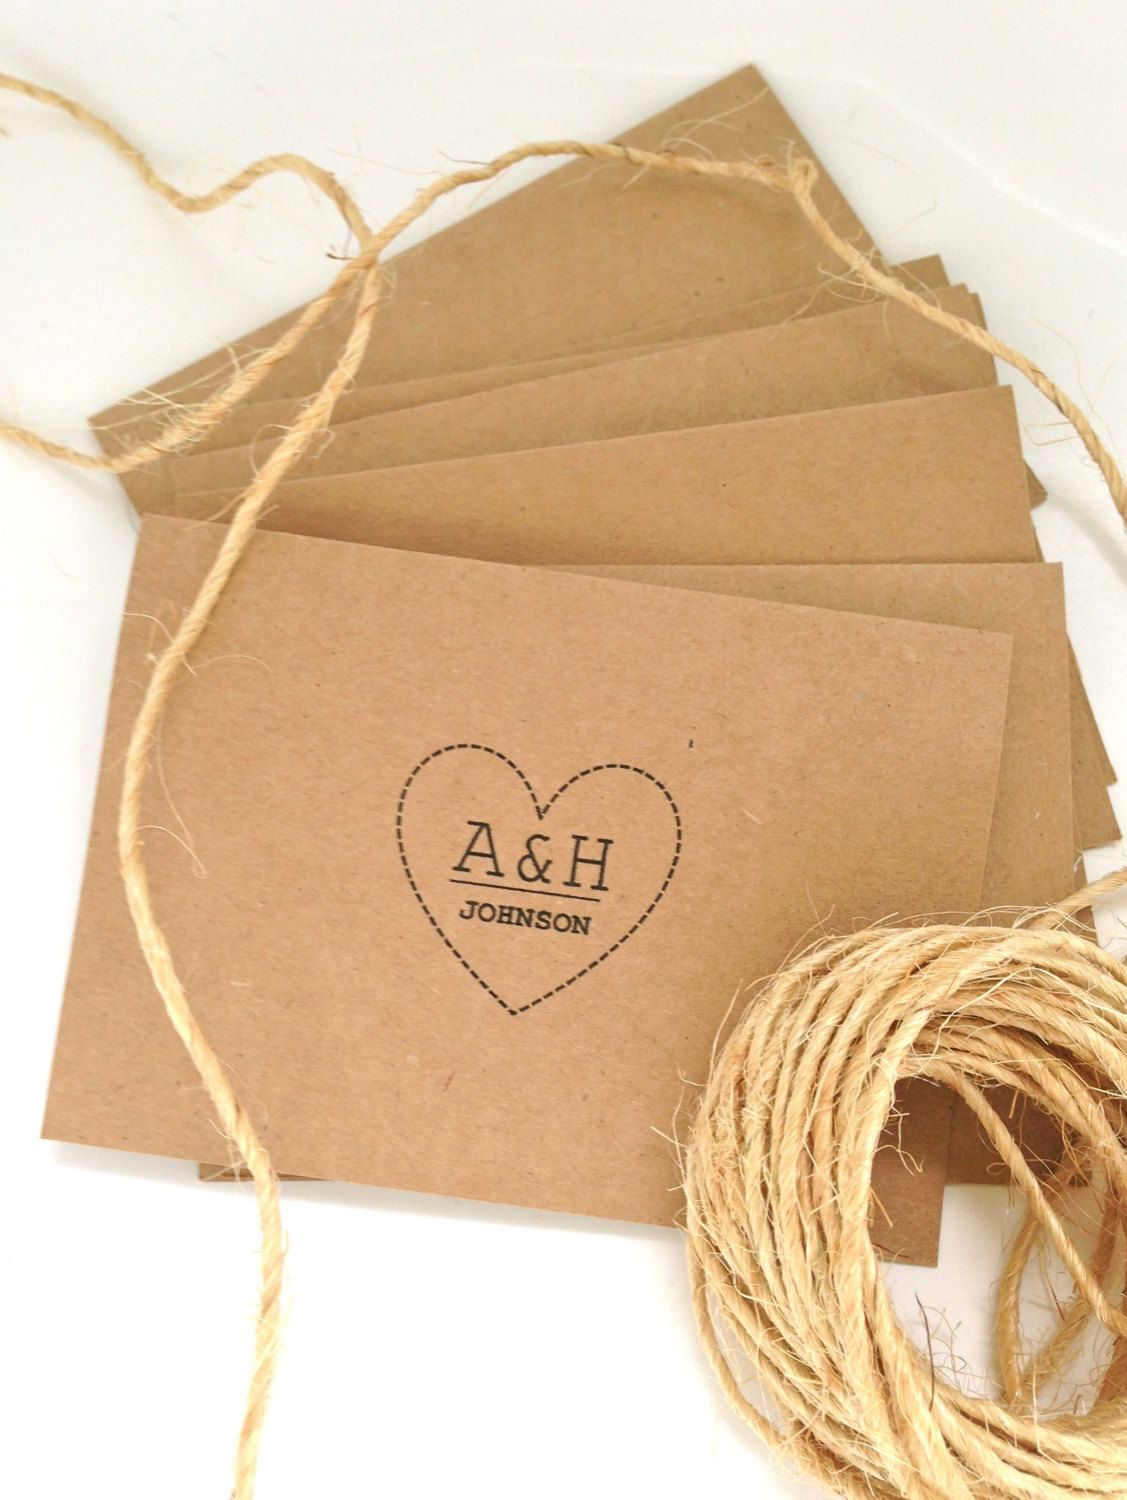 20 Customised Wedding Thank you cards/invitations. Initials and surname heart insignia. Country chic.